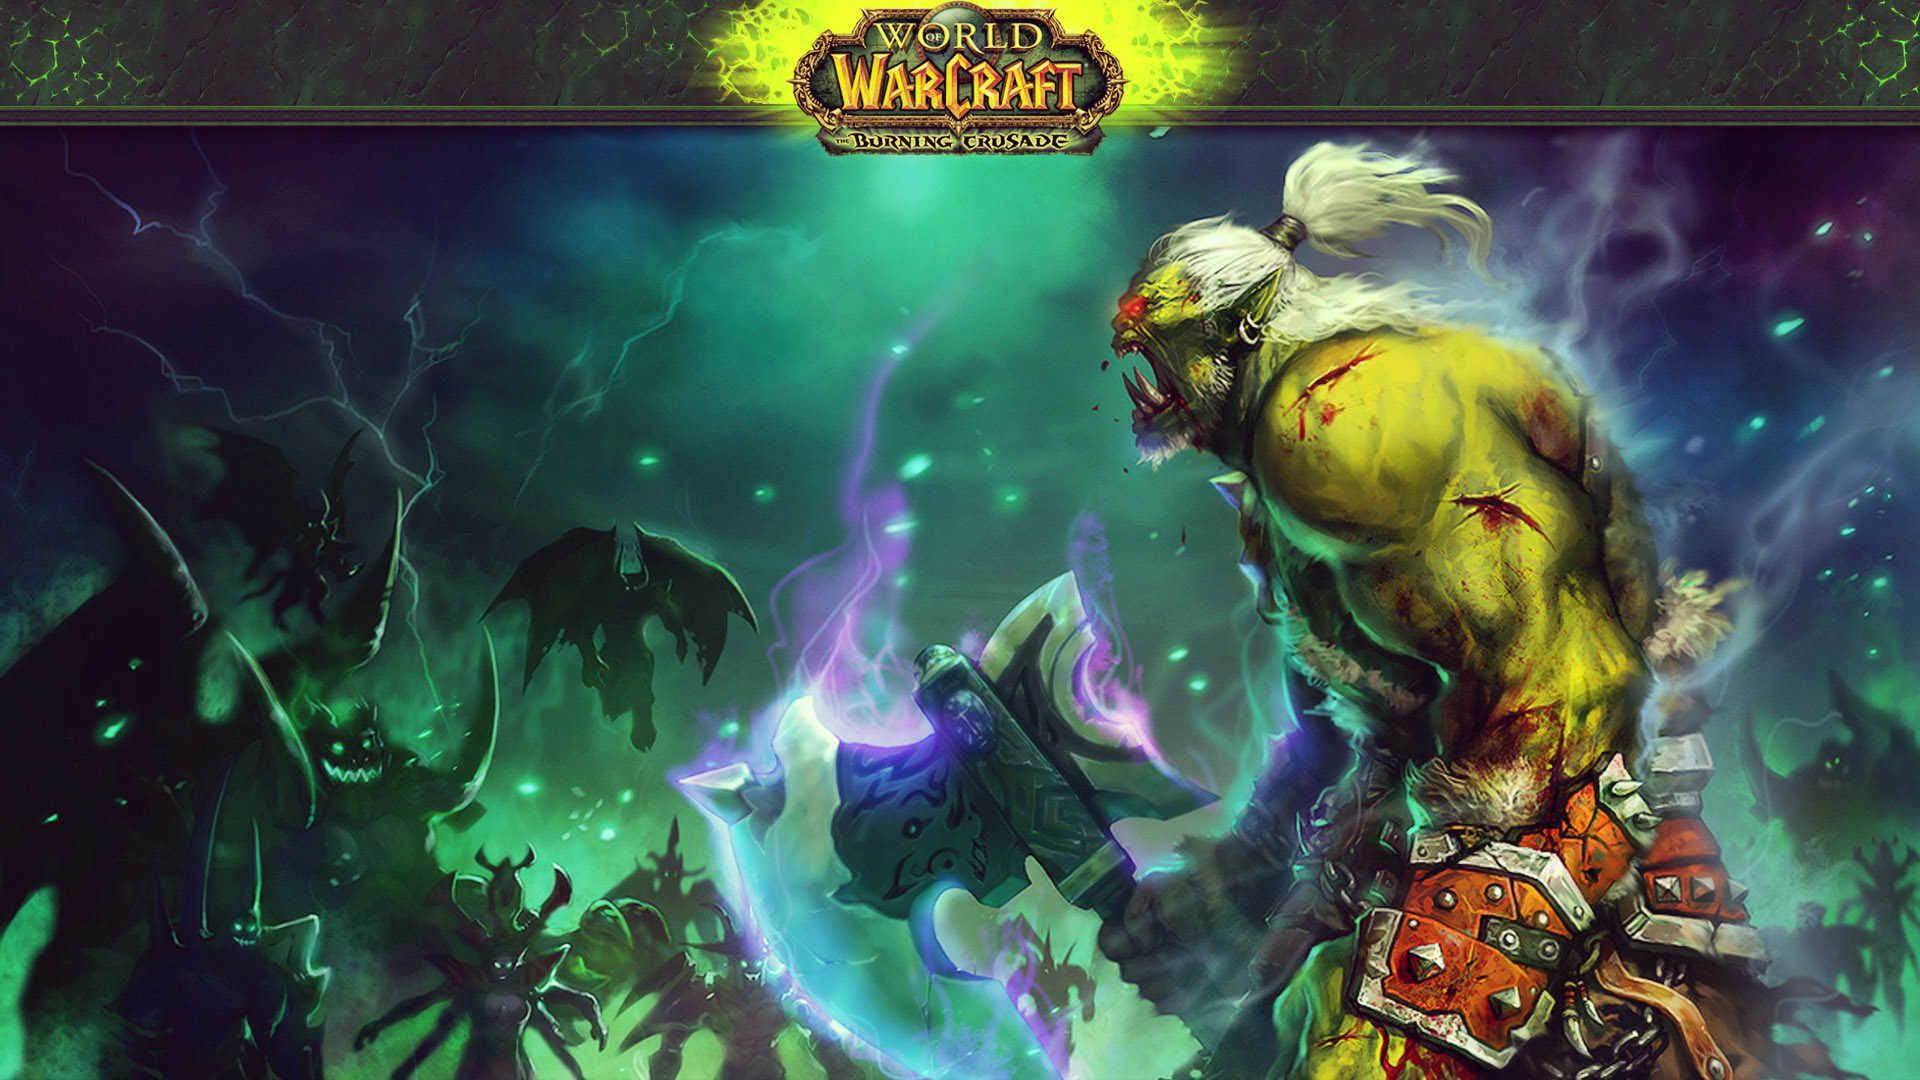 World Of Warcraft Burning Crusade HD Wallpaper | Надо ...